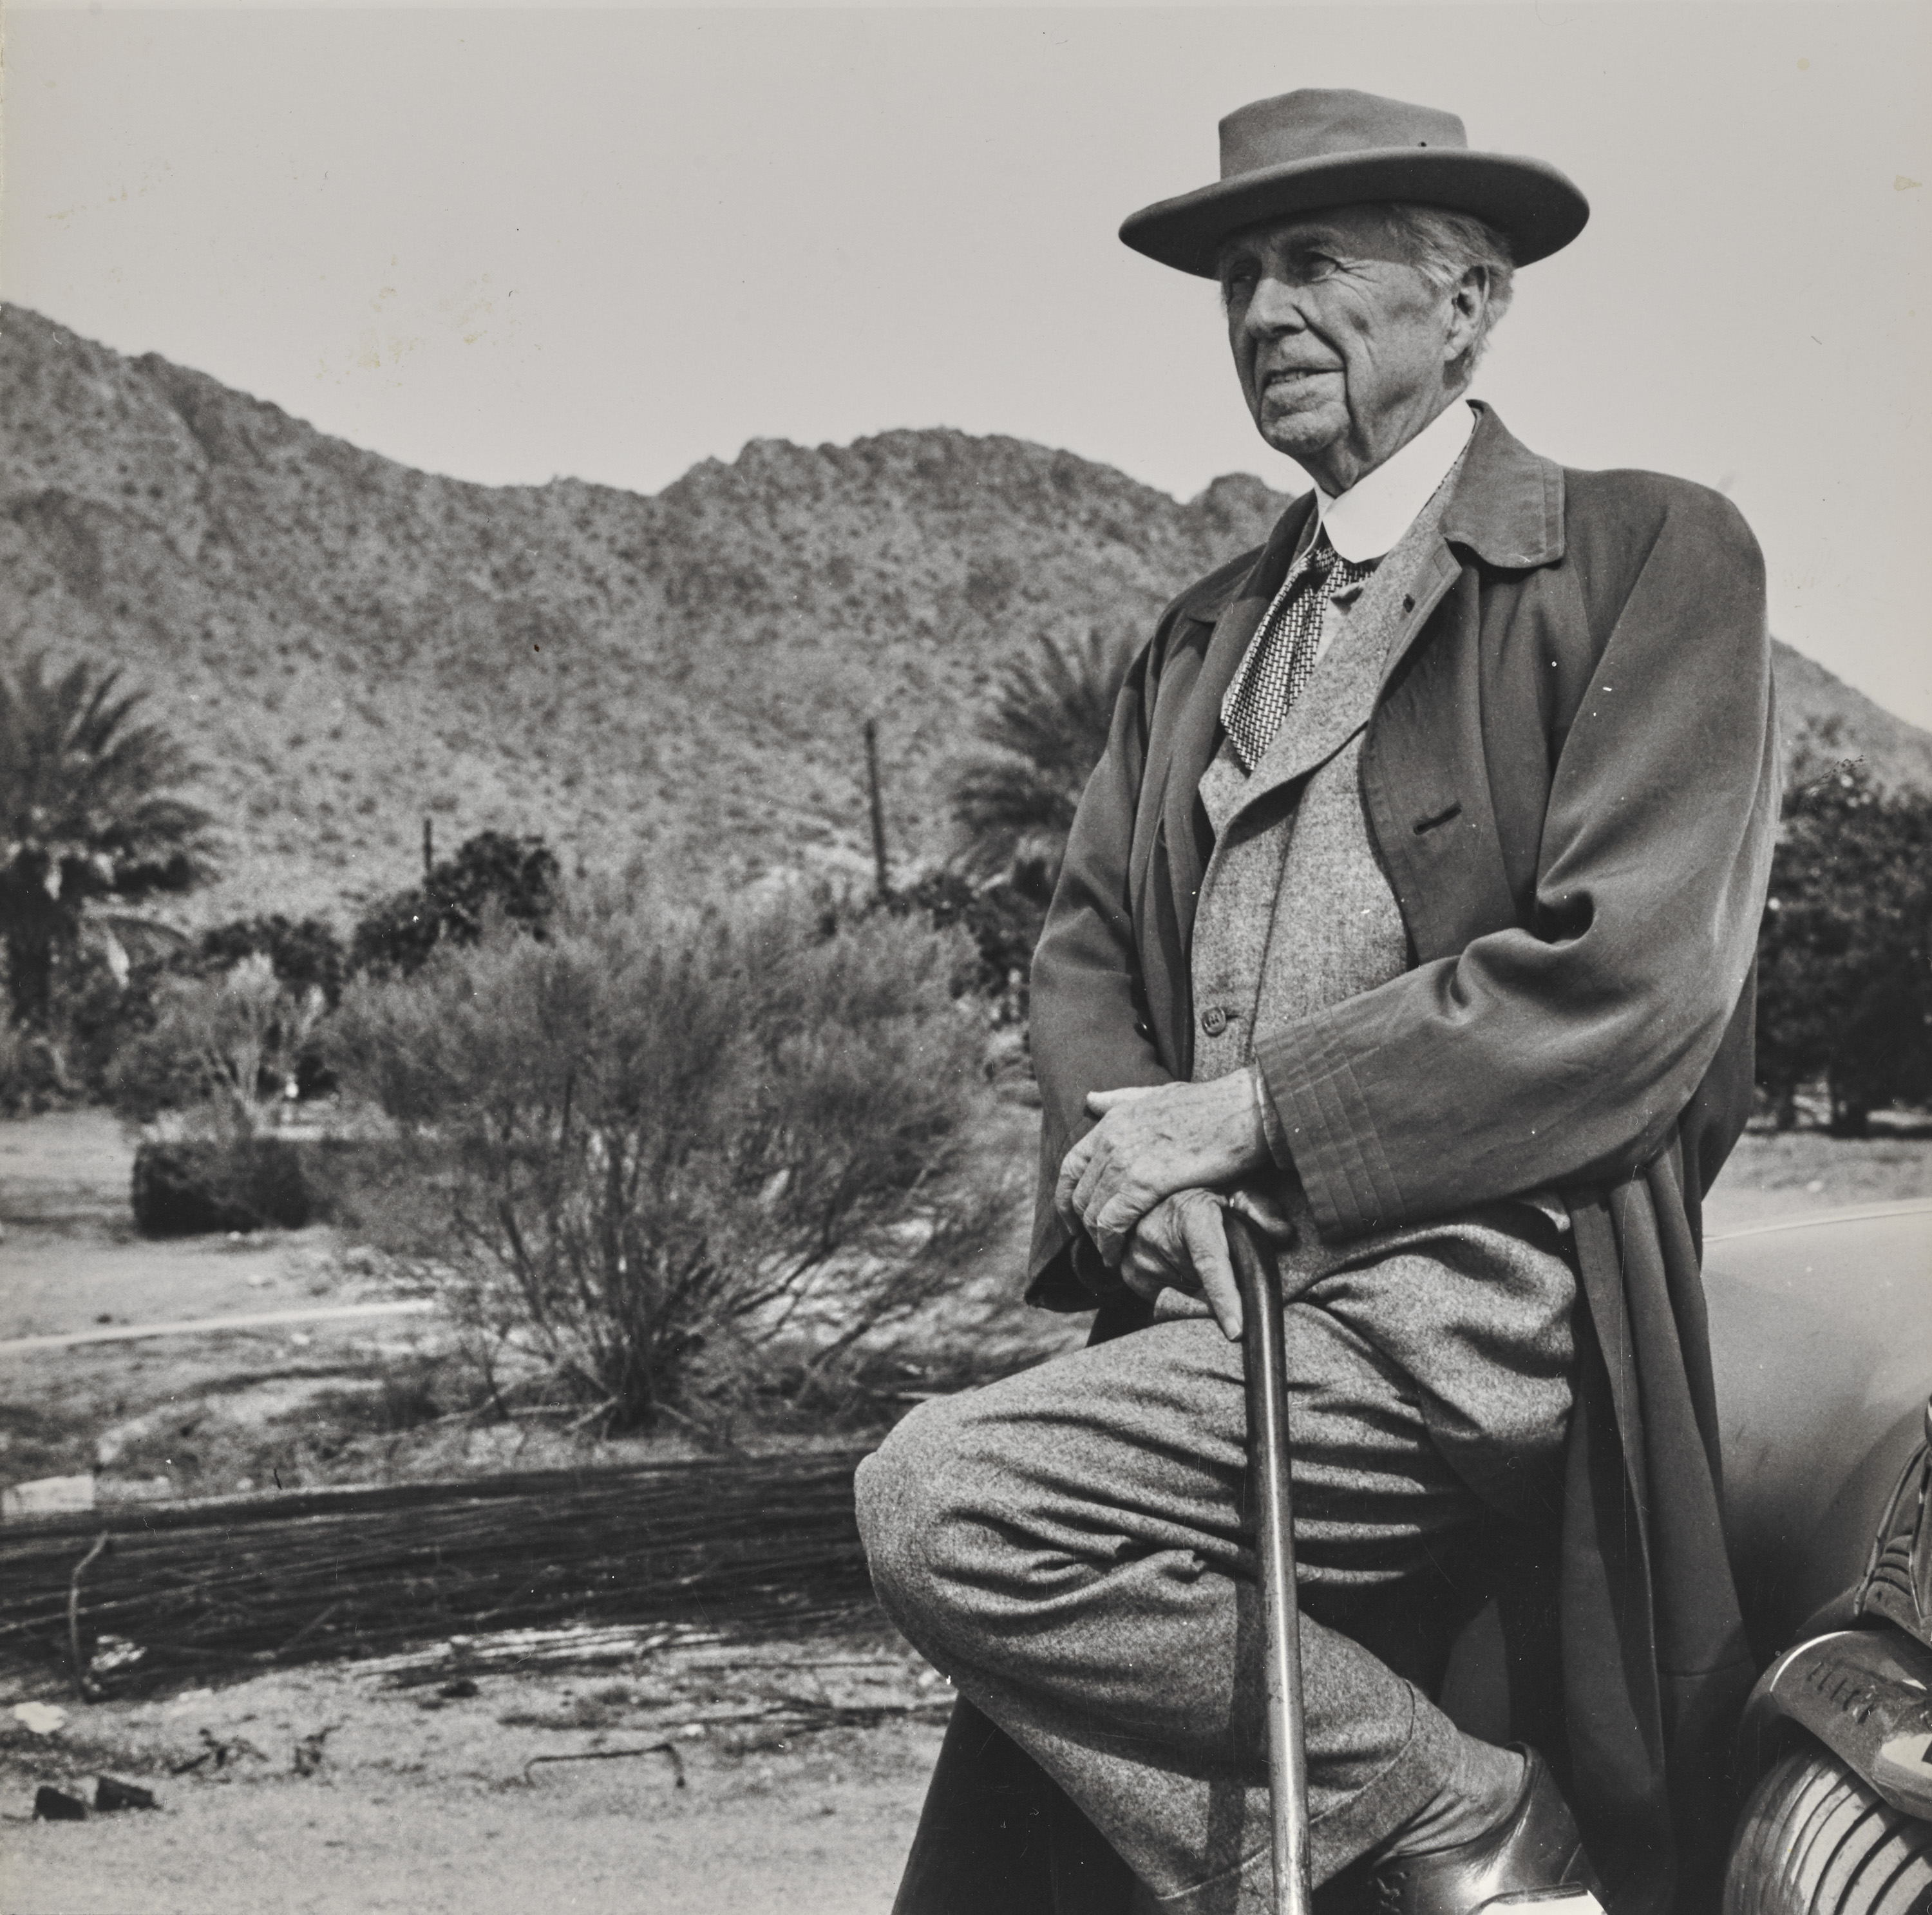 Unknown photographer. Frank Lloyd Wright. n.d. The Frank Lloyd Wright Foundation Archives